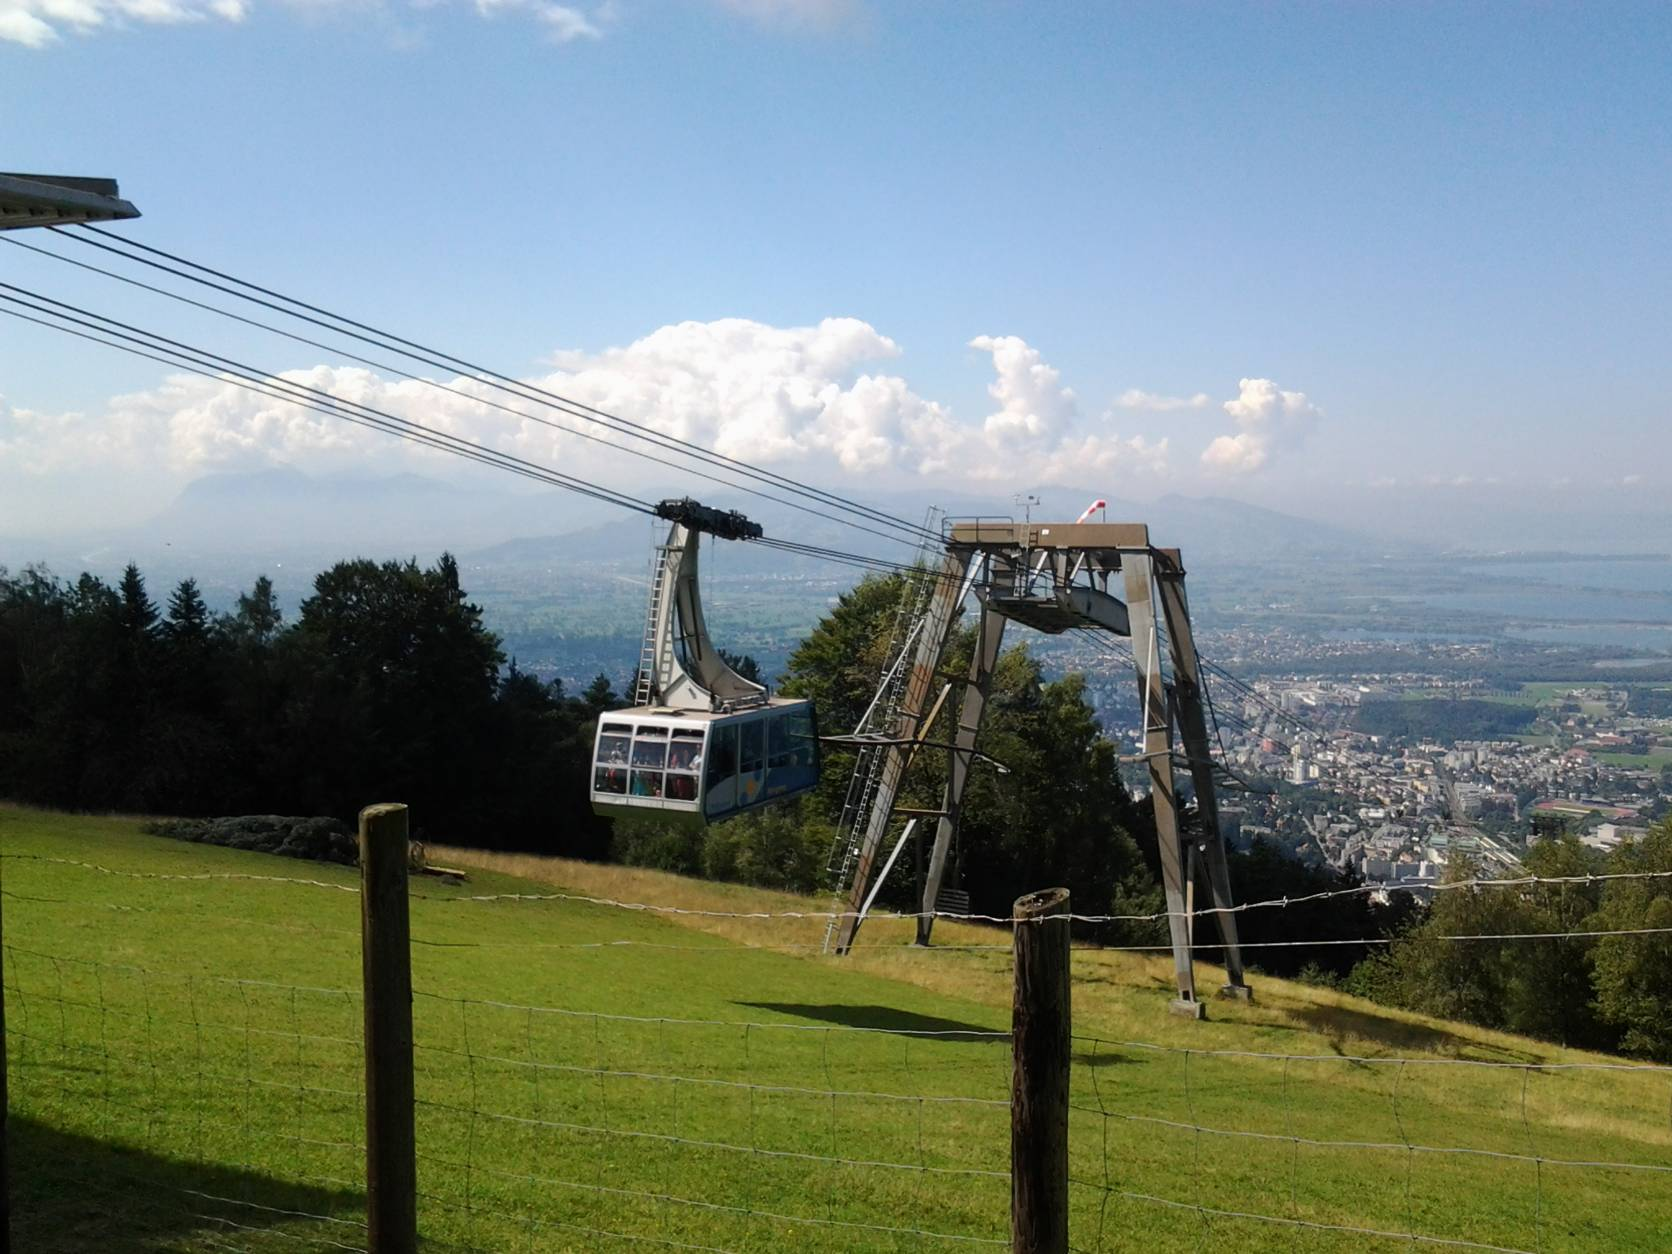 Cable railway to the Pfänder